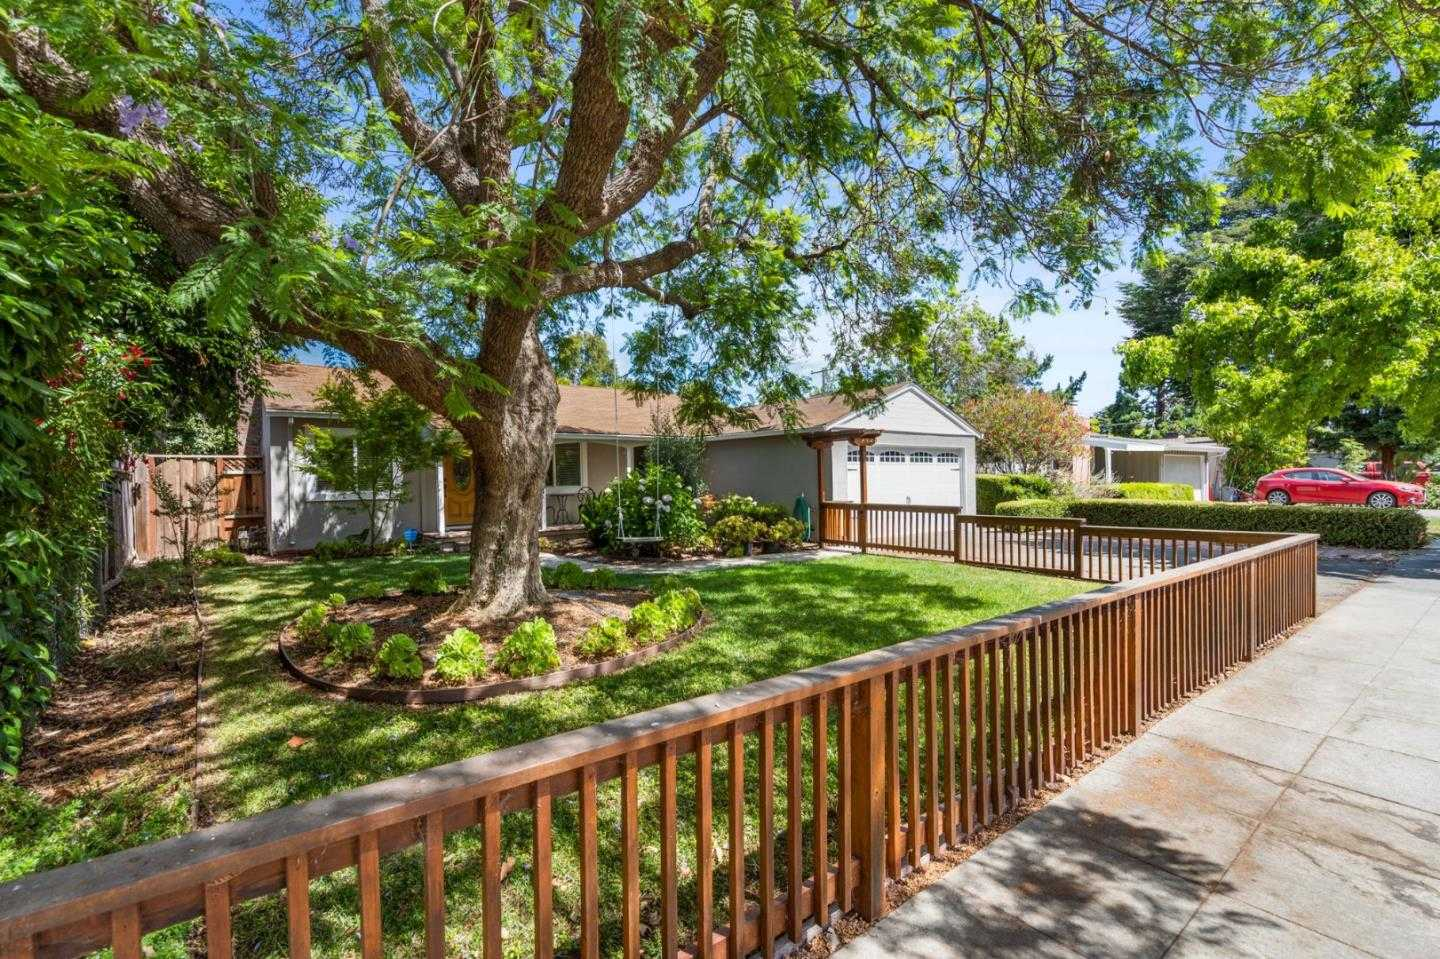 $1,140,000 - 3Br/1Ba -  for Sale in San Jose